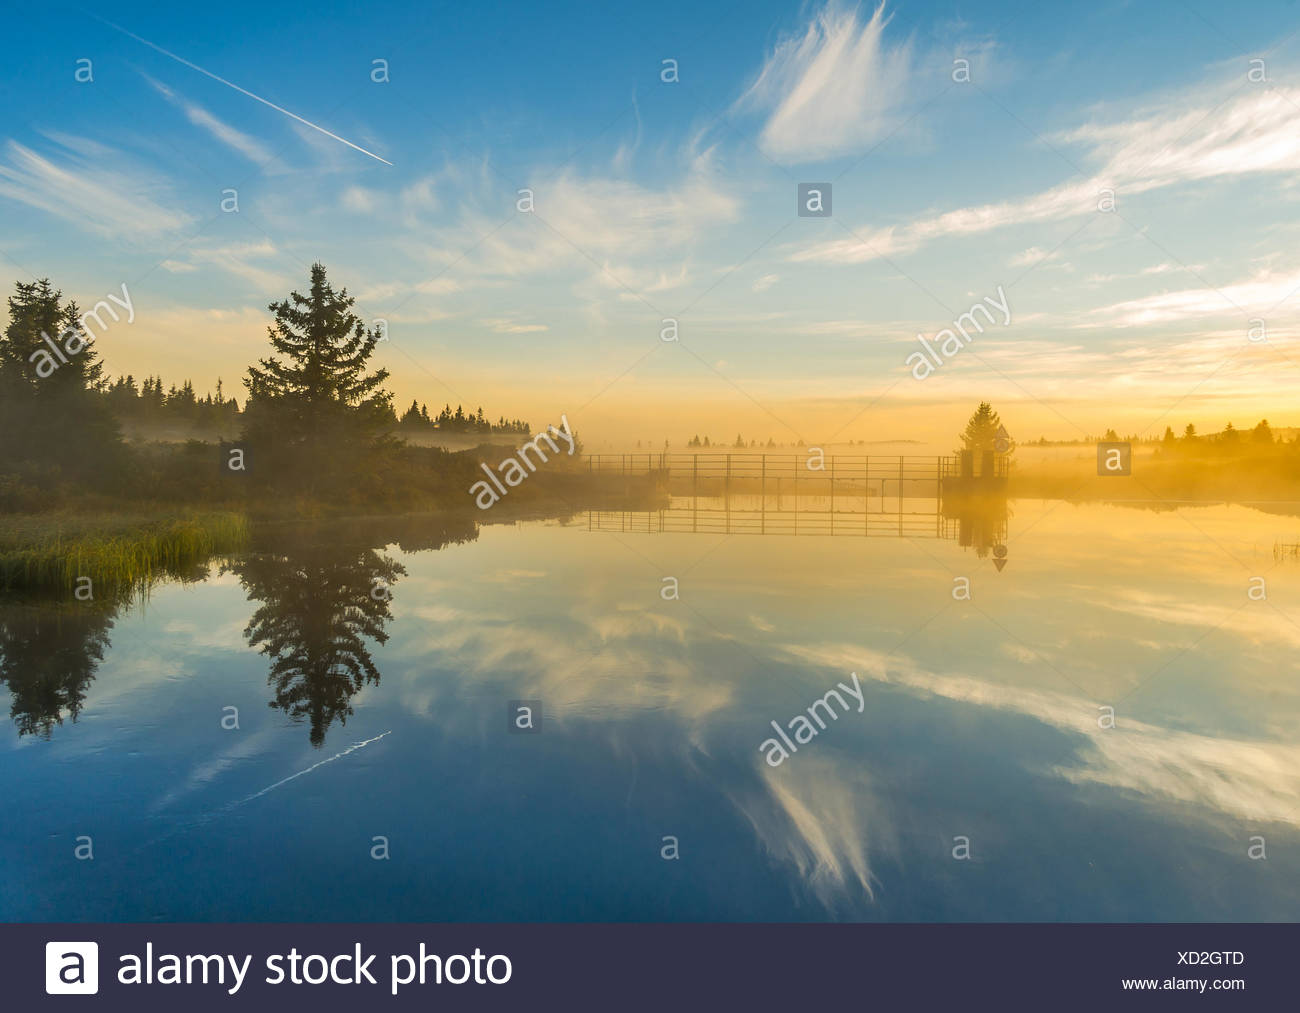 Calm landscape with reflections in river - Stock Image